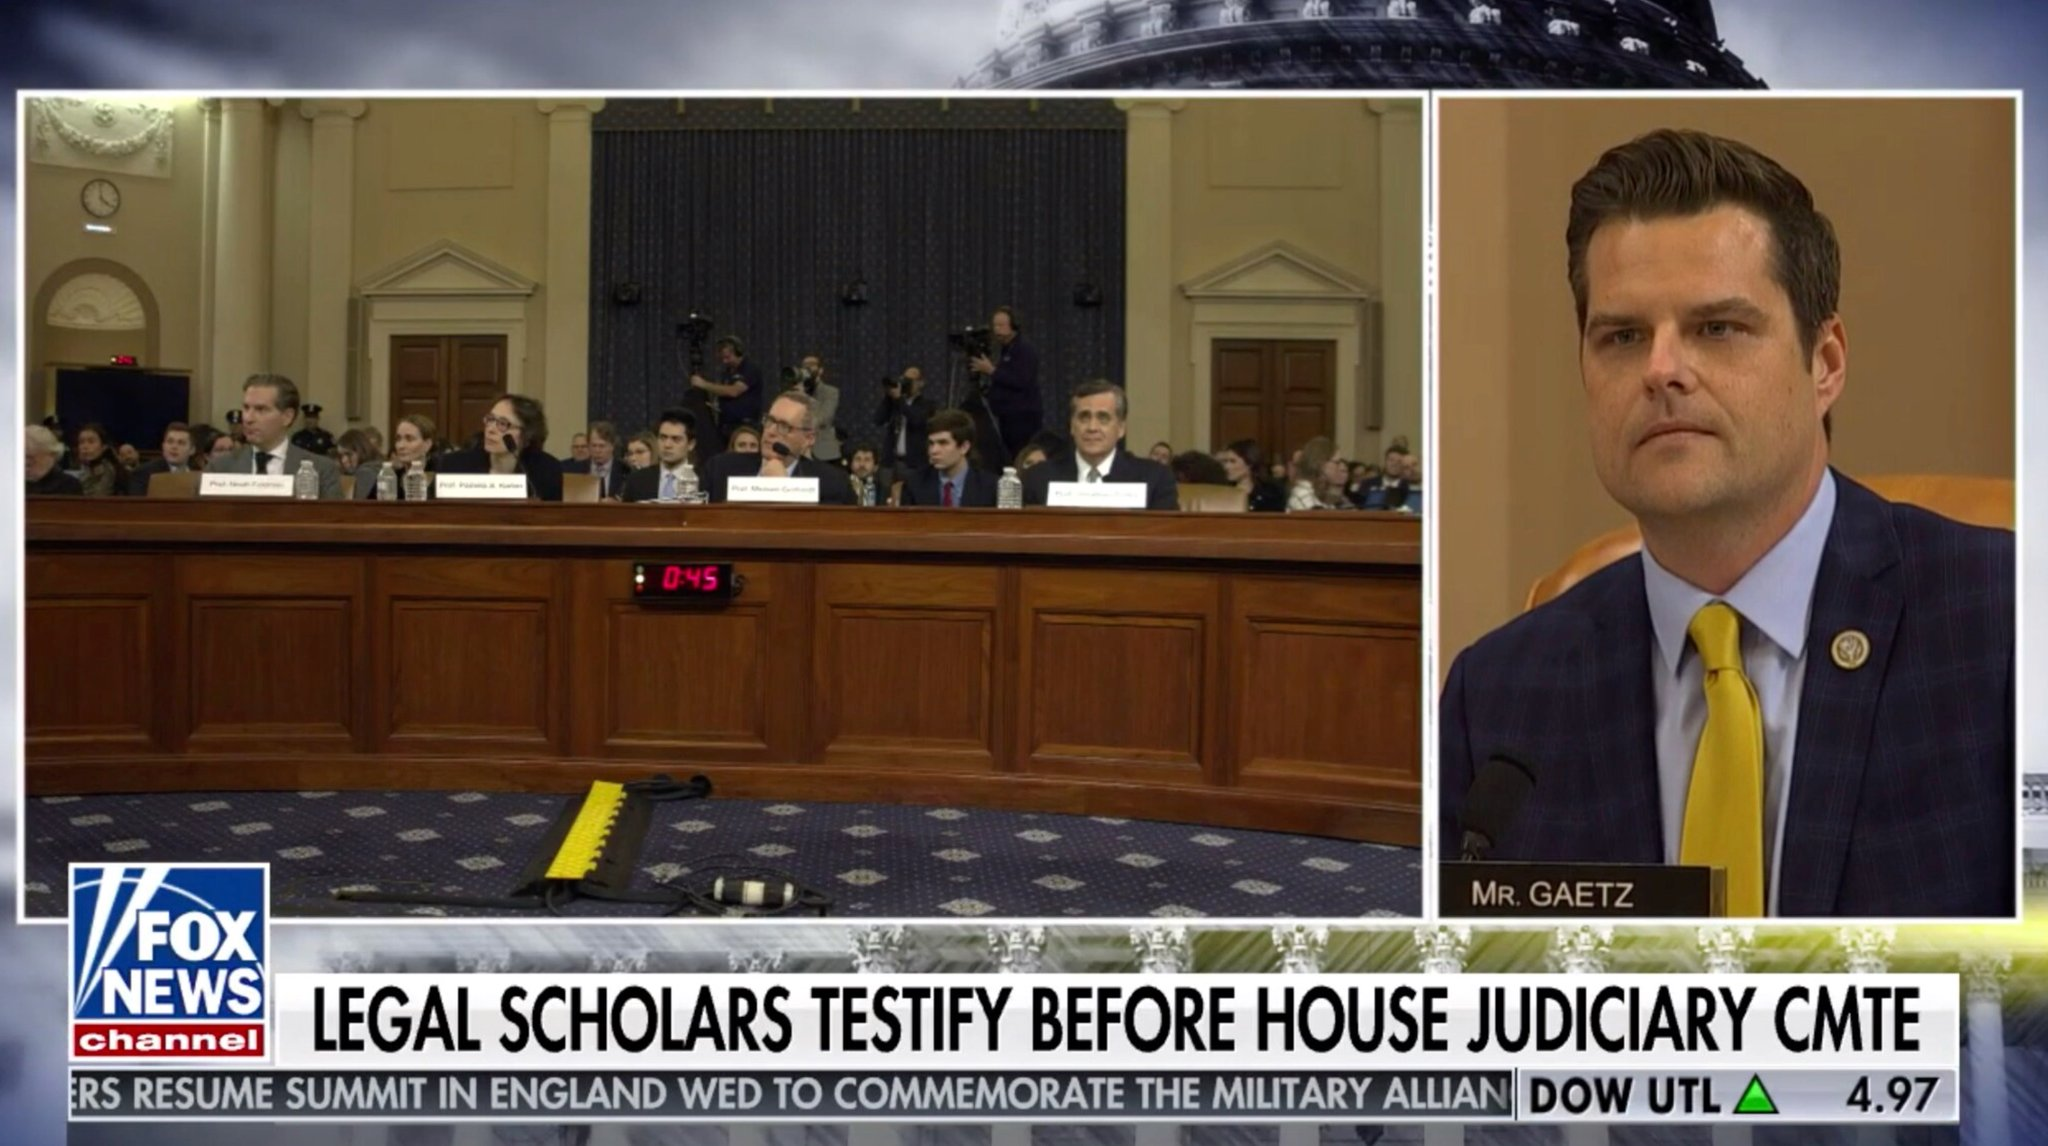 🚨 BREAKING: @RepMattGaetz asked the witnesses in today's sham hearing to raise their hands if they have personal knowledge of a single fact in Schiff's report.  No one raised their hand.  Why are we wasting time on liberal professors who have no firsthand knowledge of this case? https://t.co/vQ9Ll9jqYP